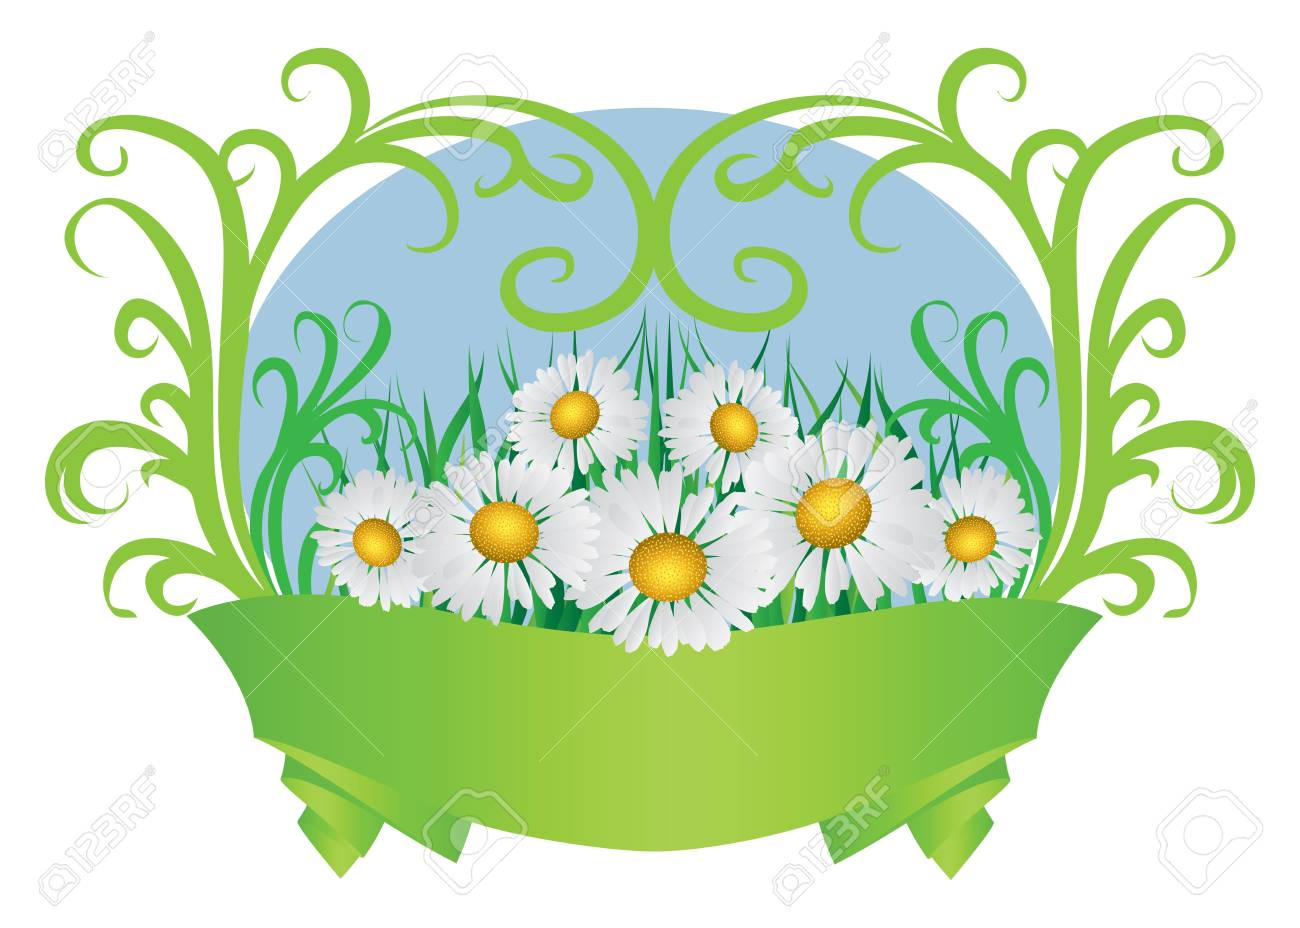 Summer floral card with daisies and green ribbon. Stock Vector - 18632343